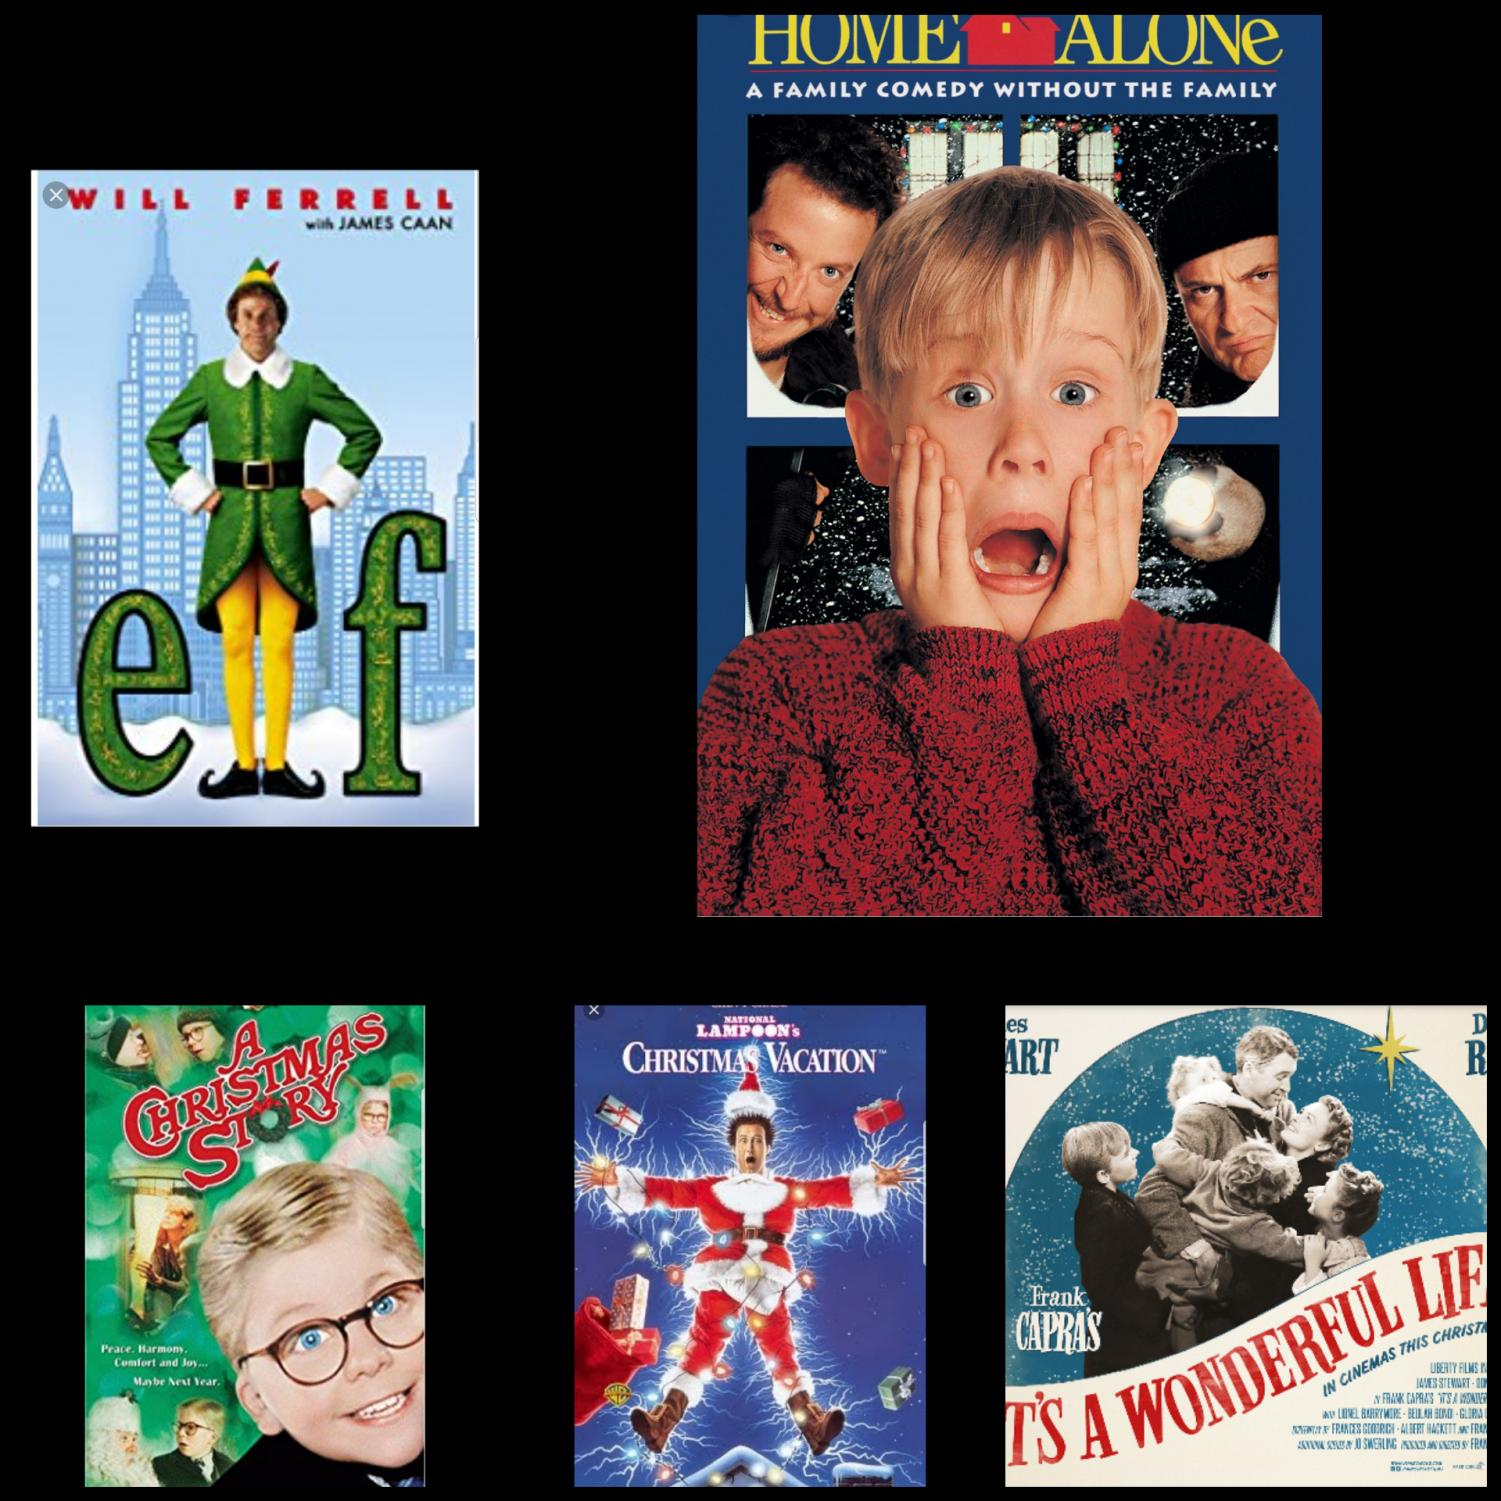 The 5 movies I talked about